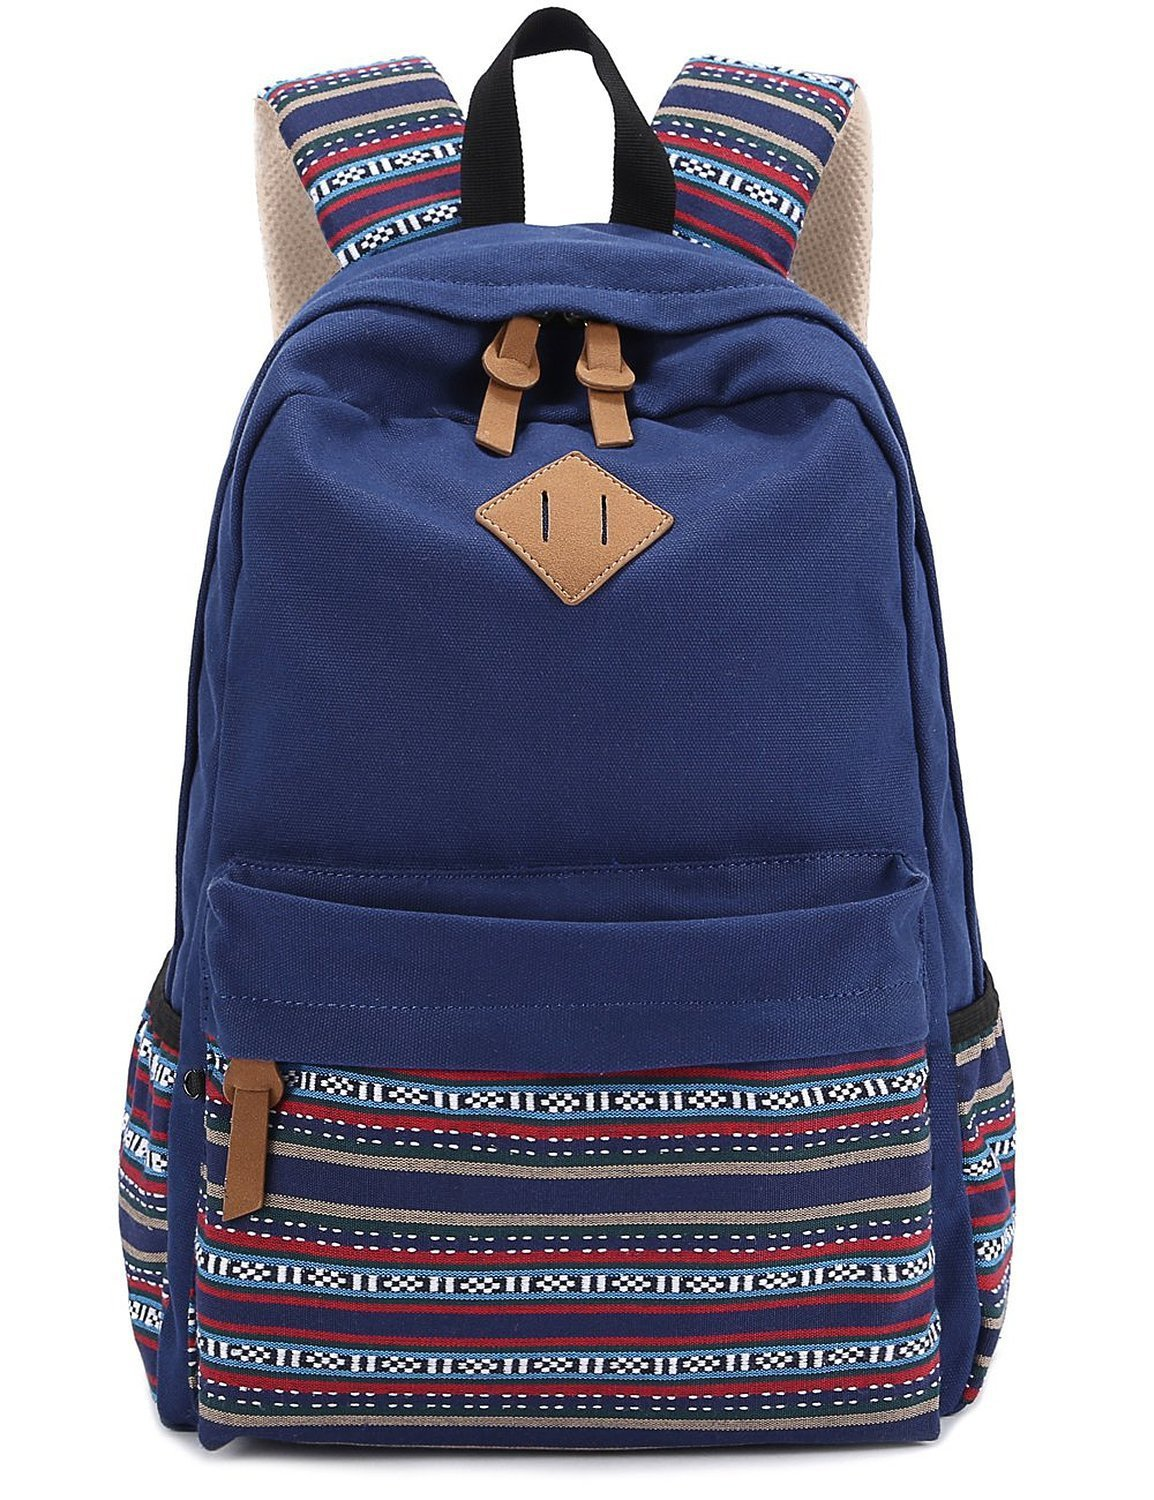 Cheap Backpacks For Teenage Girls